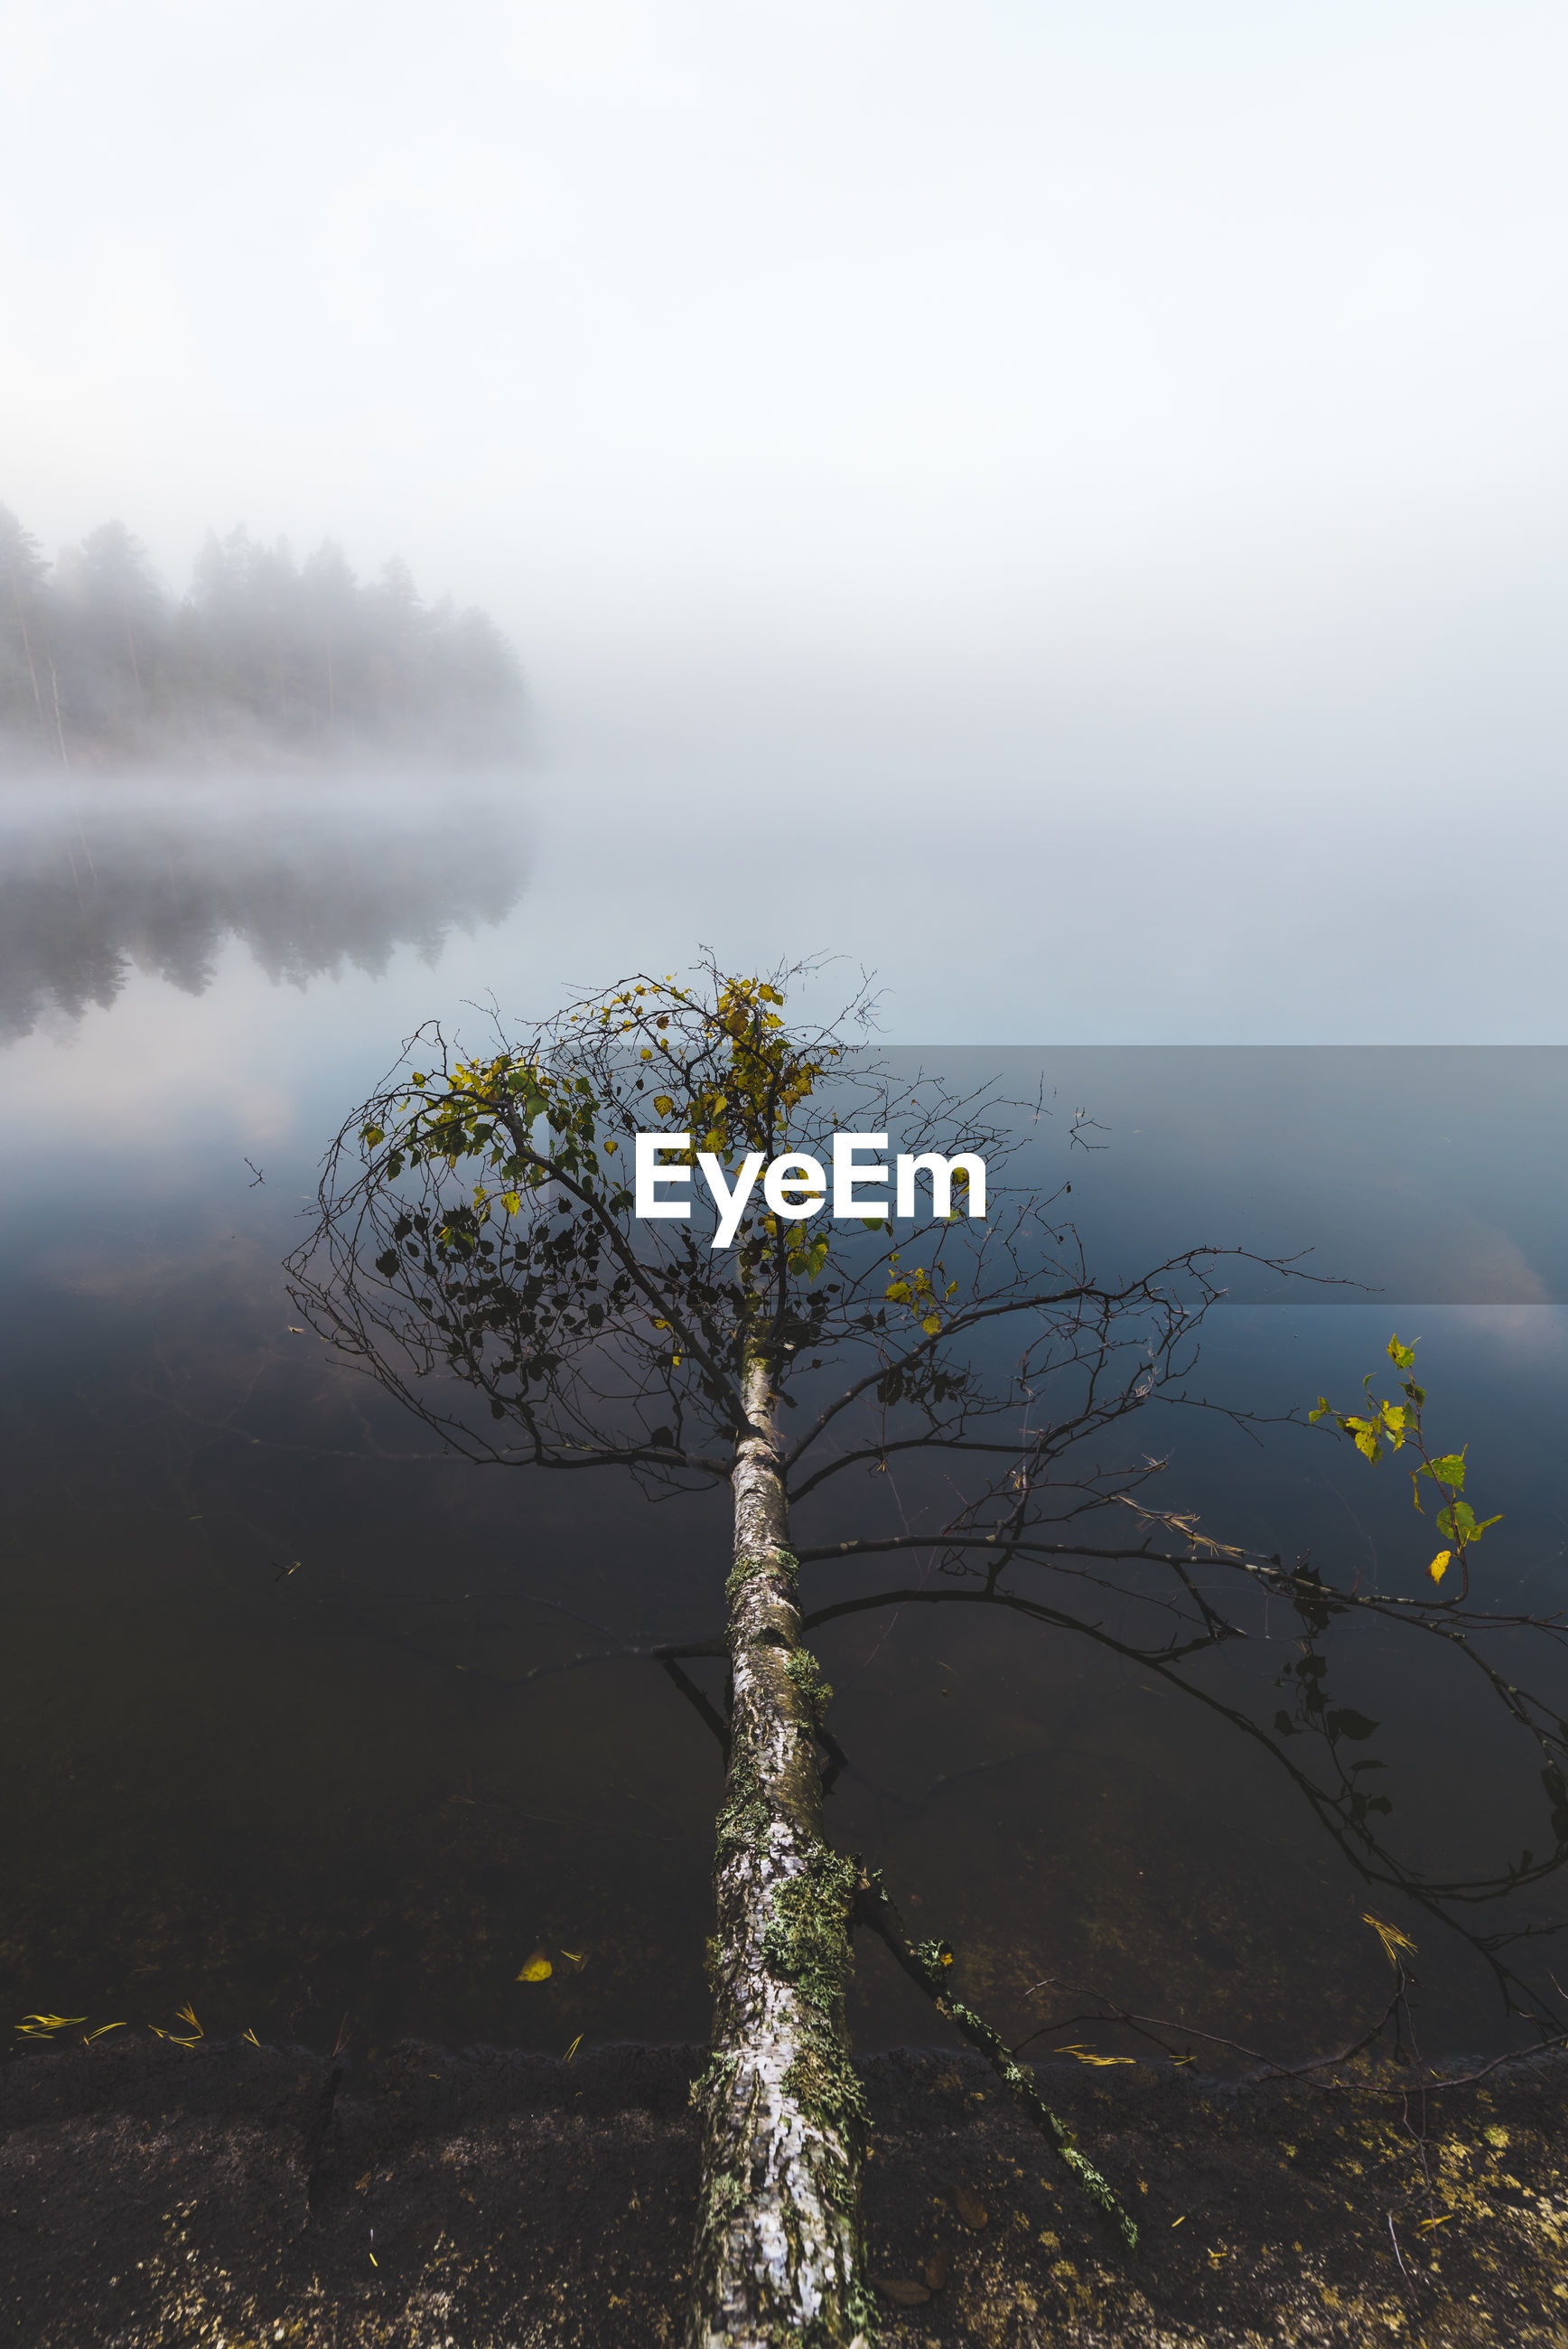 VIEW OF CALM LAKE AGAINST FOGGY WEATHER